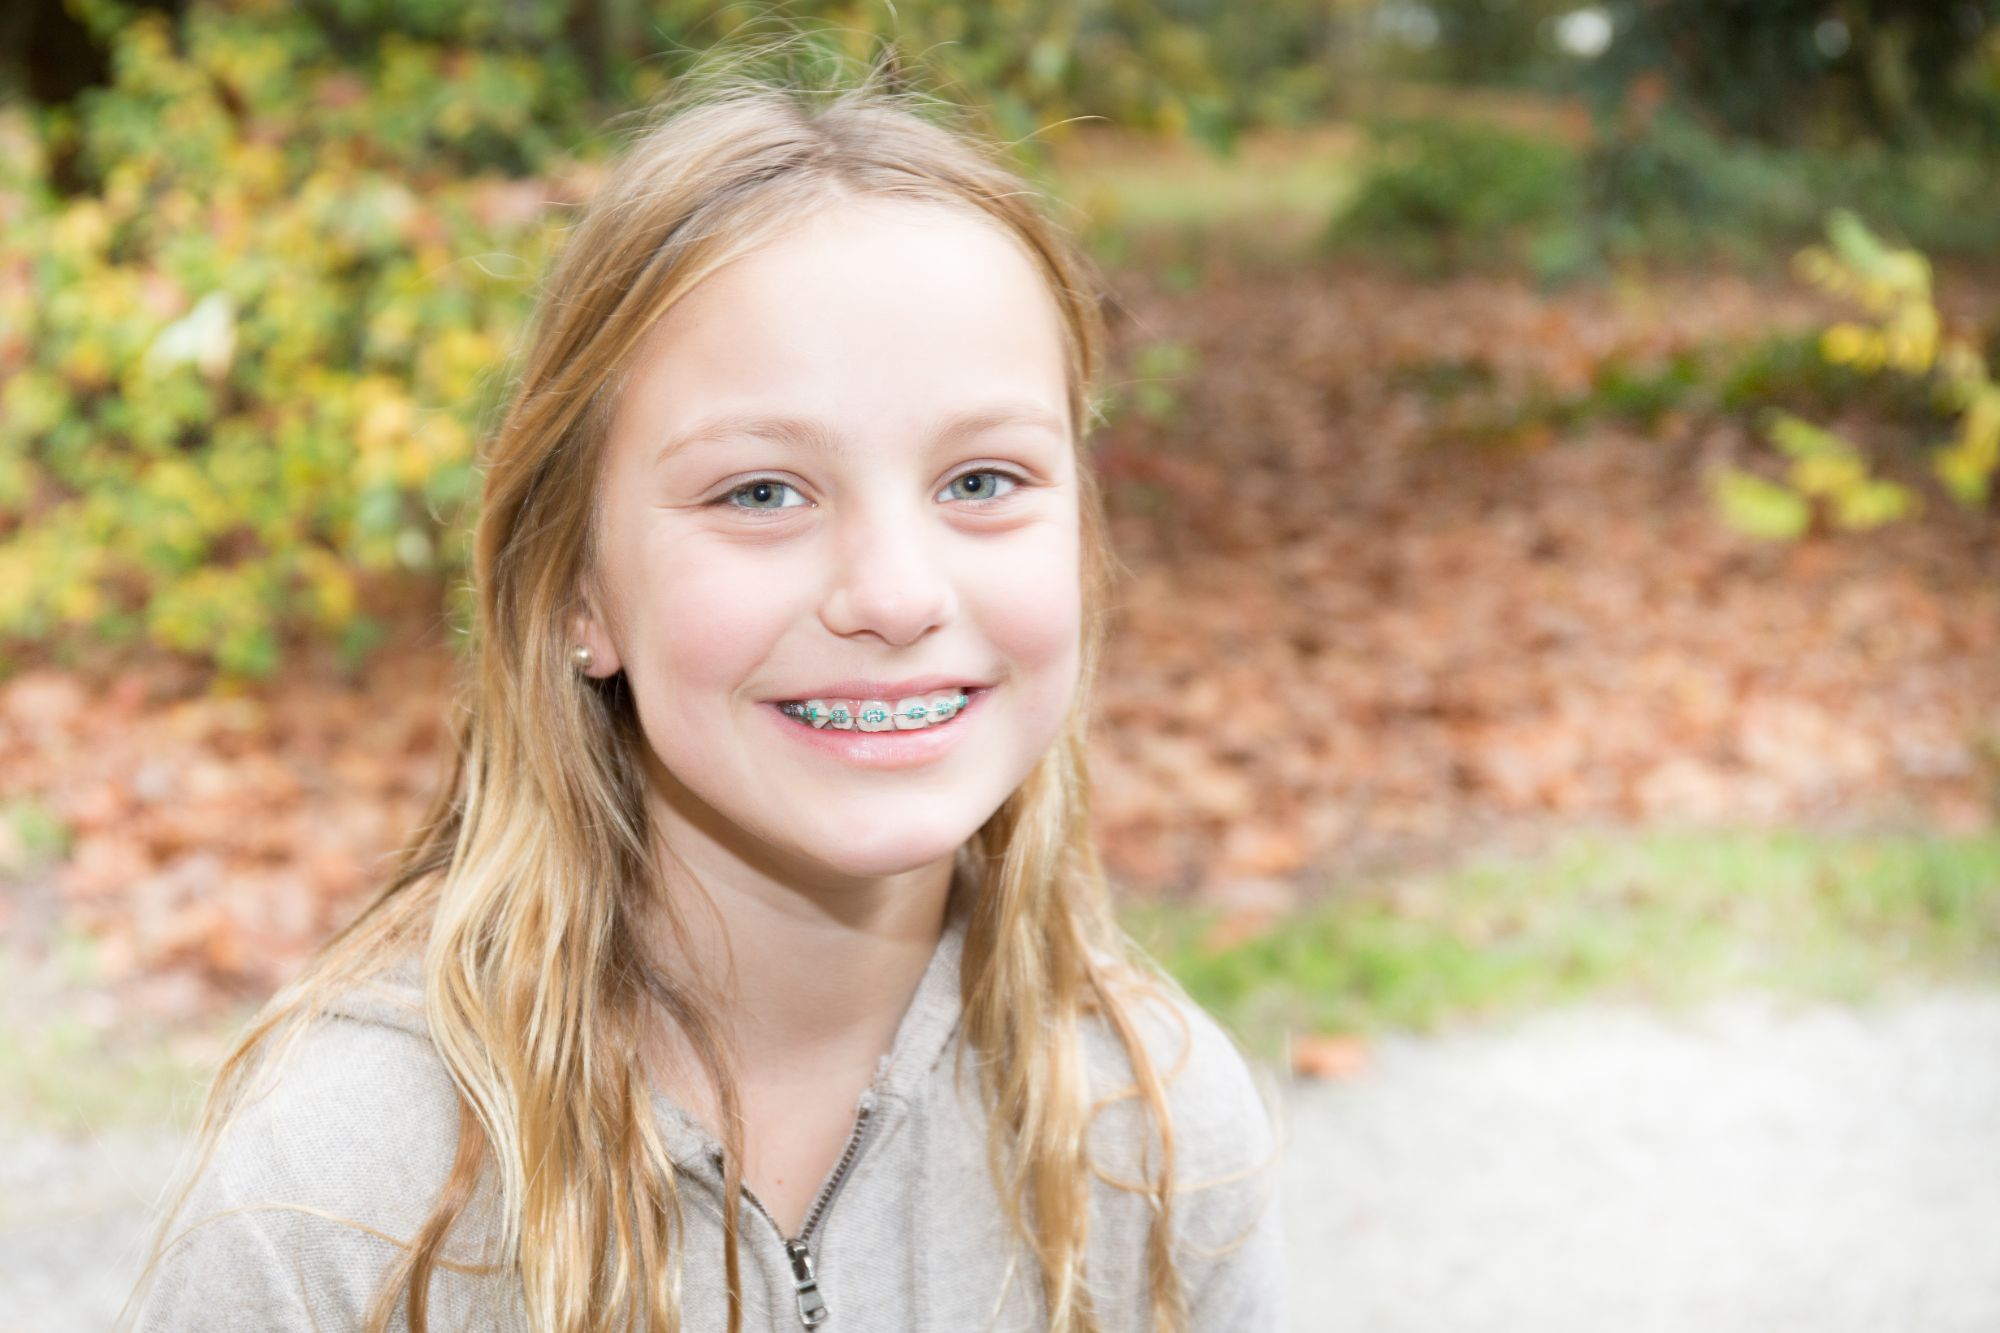 Choose the Best Orthodontist for Your Teen's Smile